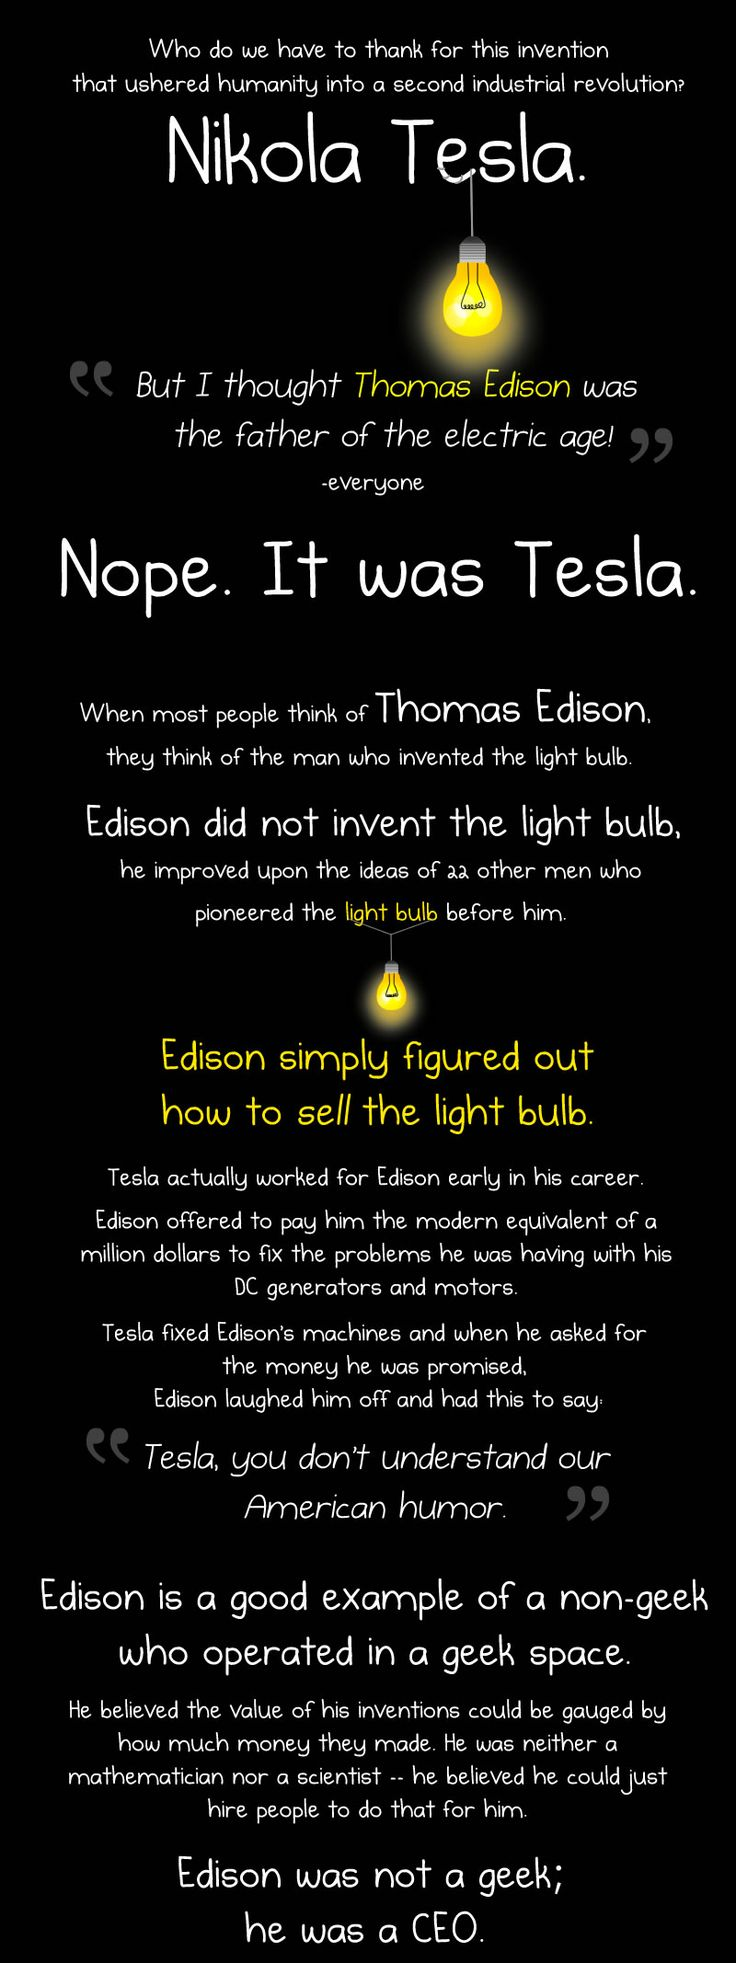 (TruthSeekerDaily) I was doing a bunch of research on Nikola Tesla for some projects going on and came across this wicked image set that sums up Tesla's story and the challenges that took place with Thomas Edison. The artist who did the work can be found at [theoatmeal.com] It's and awesome site!